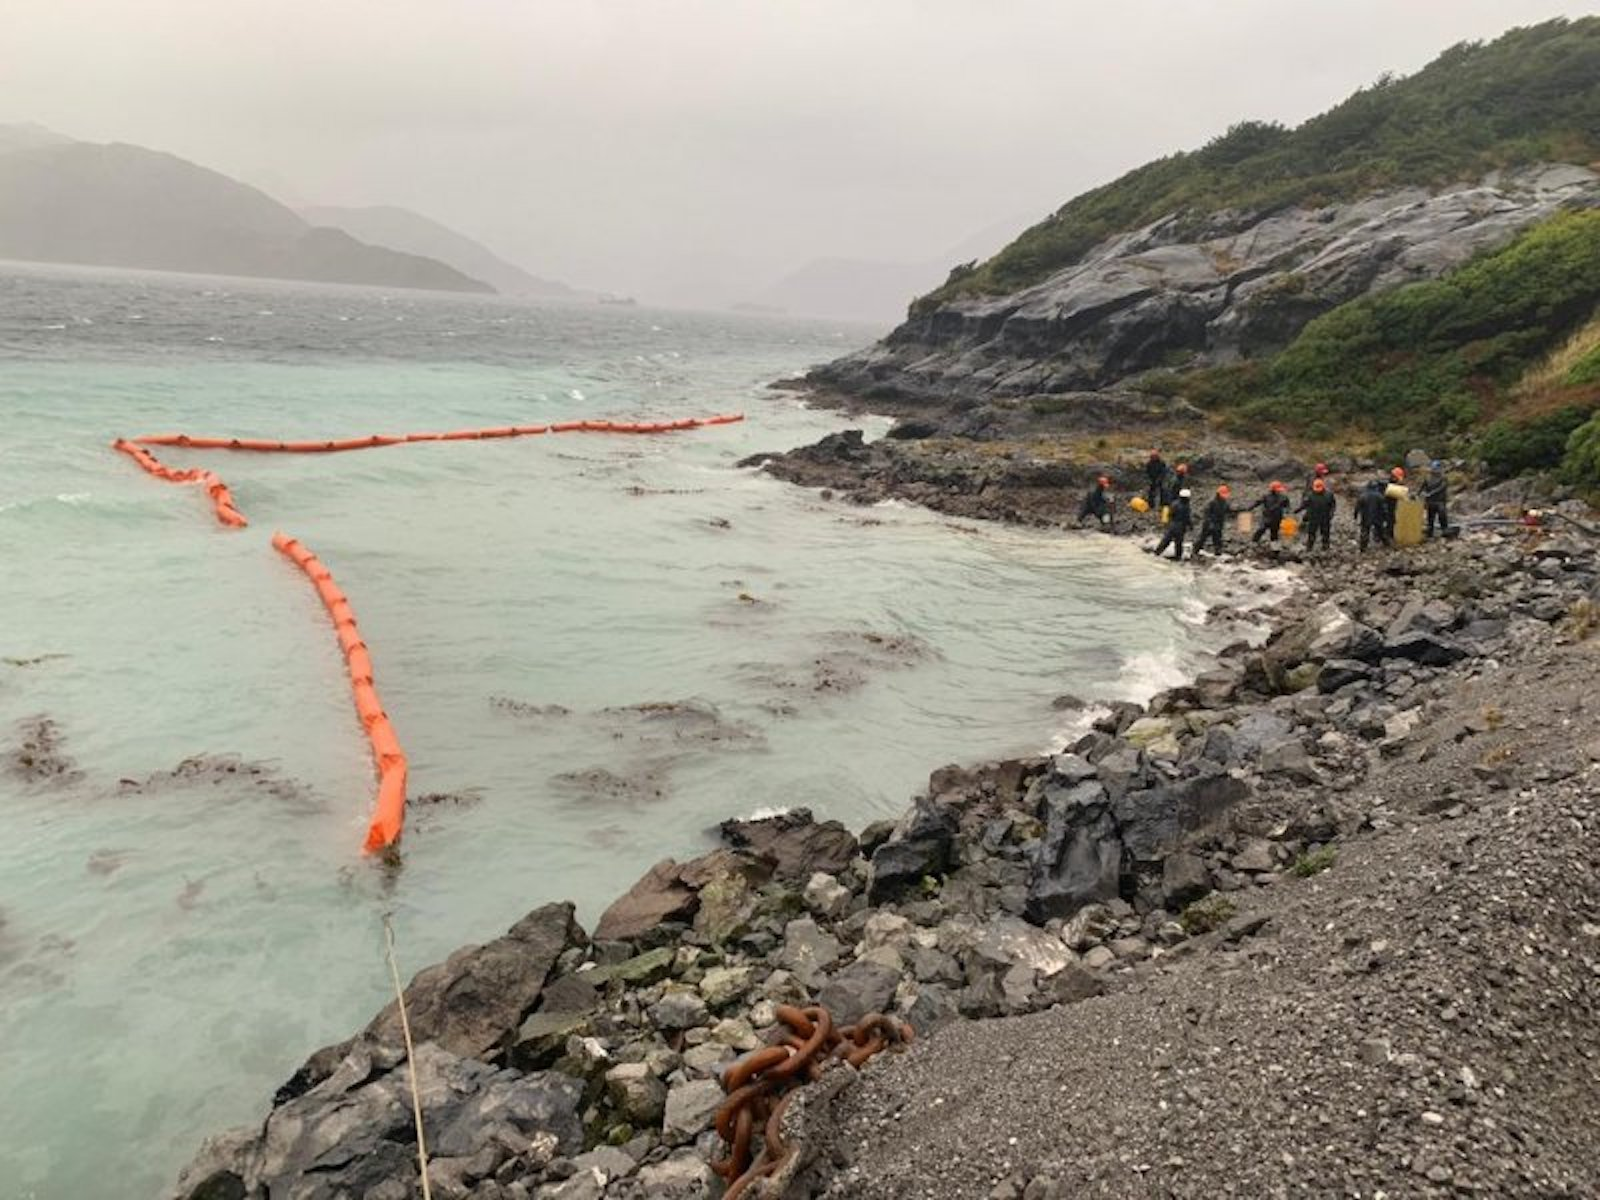 The Chilean Navy responds to an oil spill on Guarello Island on July 27, 2019 in this photo obtained by CNN.